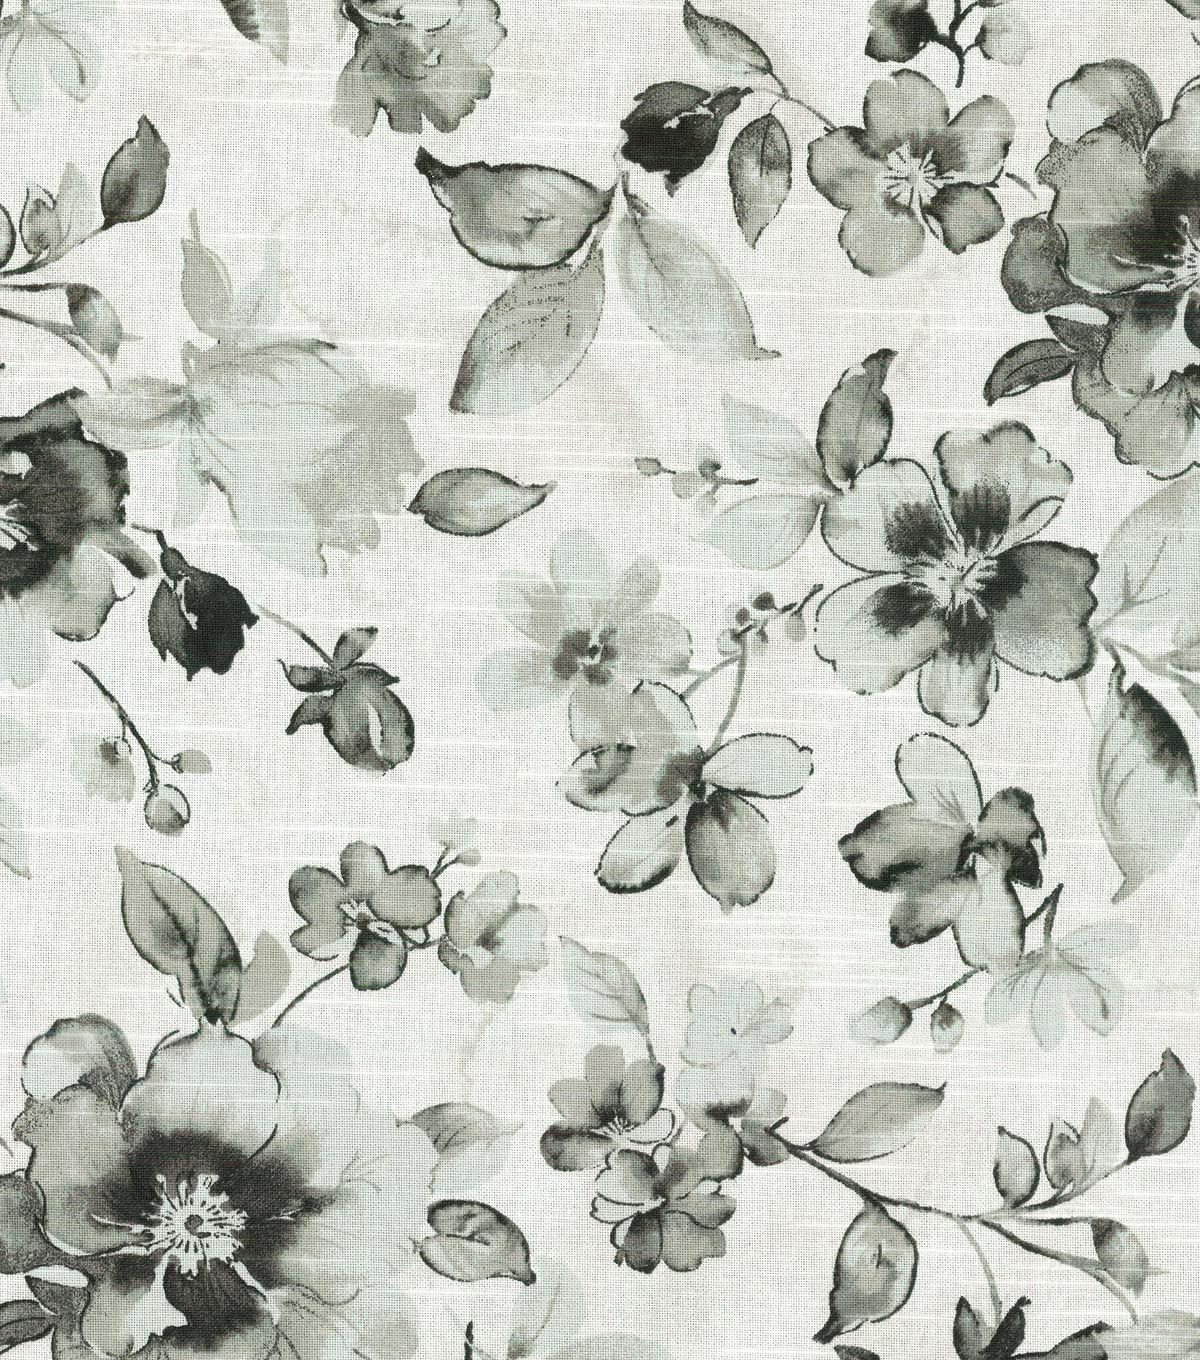 kelly ripa upholstery fabric-ethereal dance ebony | kelly ripa